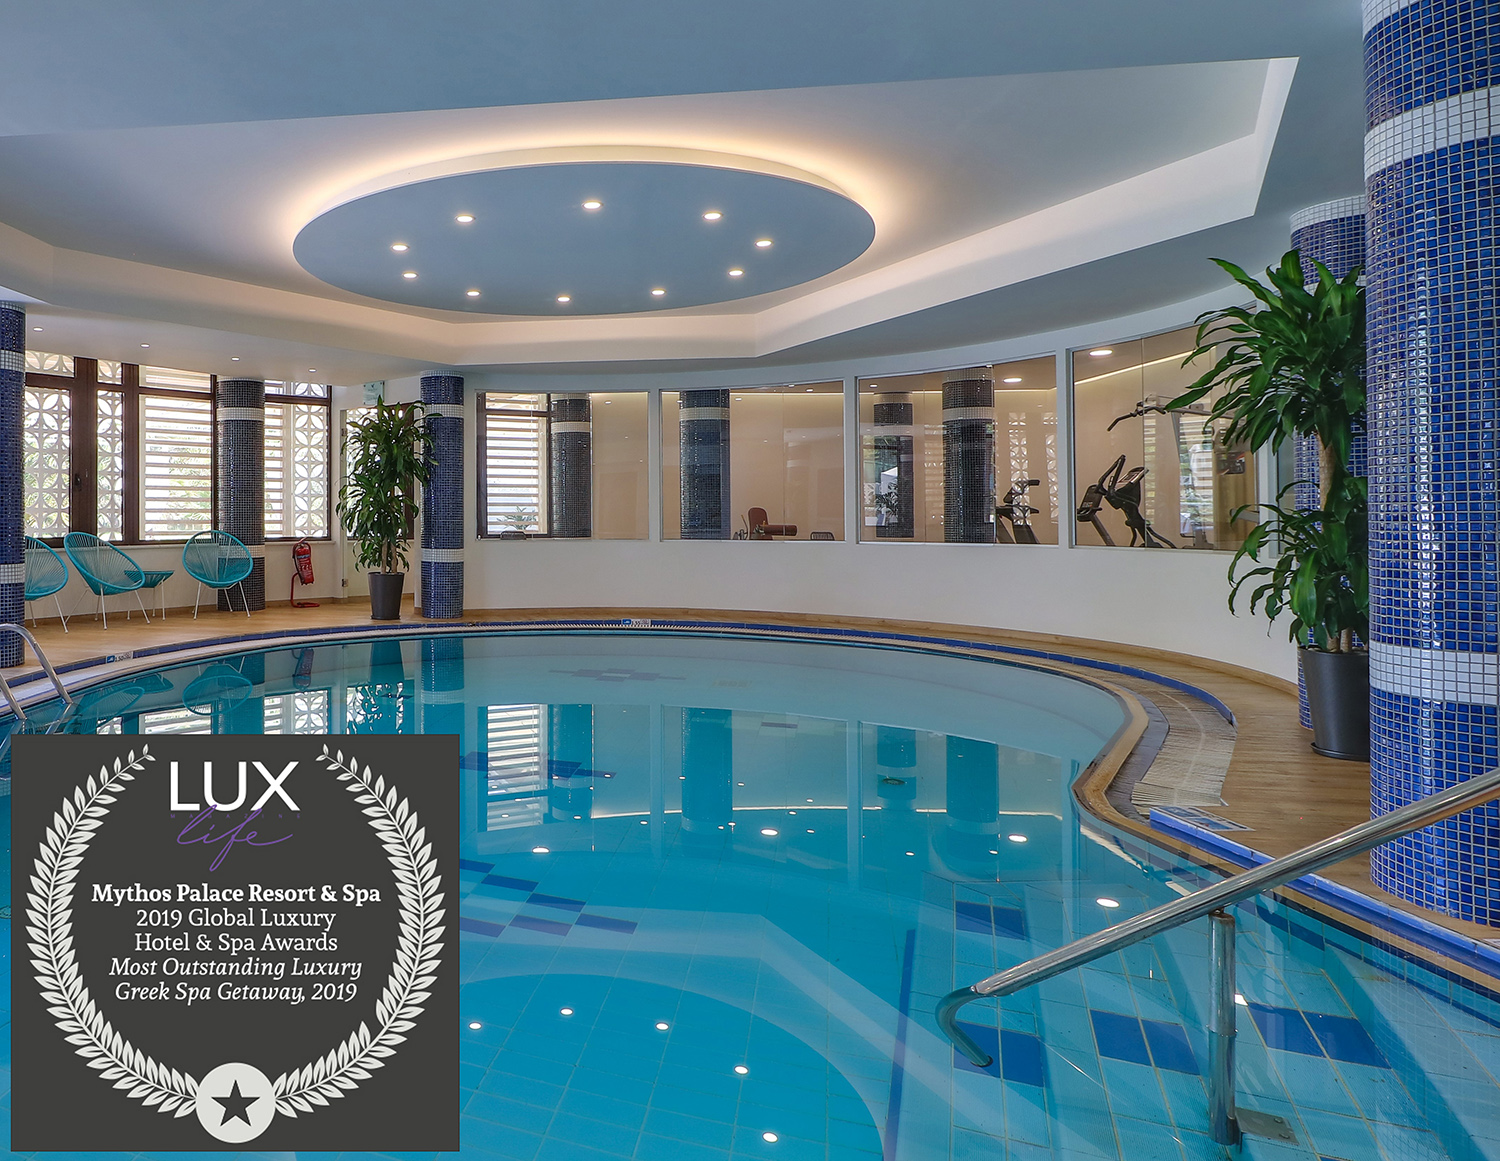 Mythos Palace Resort & Spa Receives Award From LUXLife Magazine